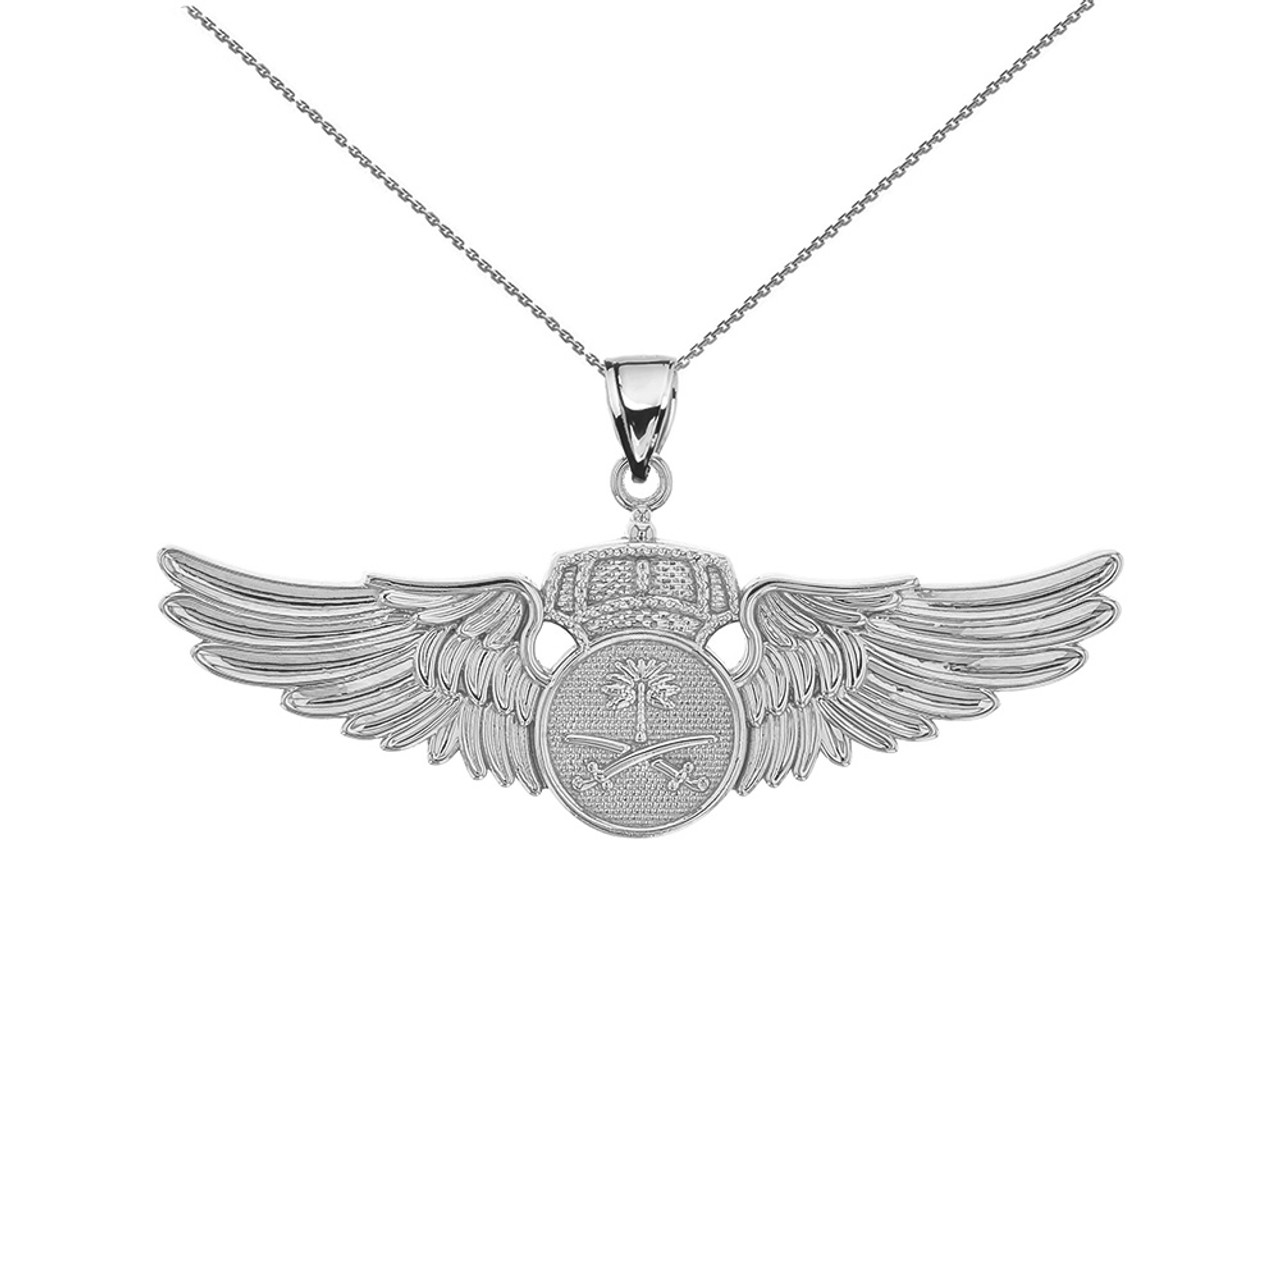 products handmade necklace wing wings pendant collections single nl reinhardt jewellery jana